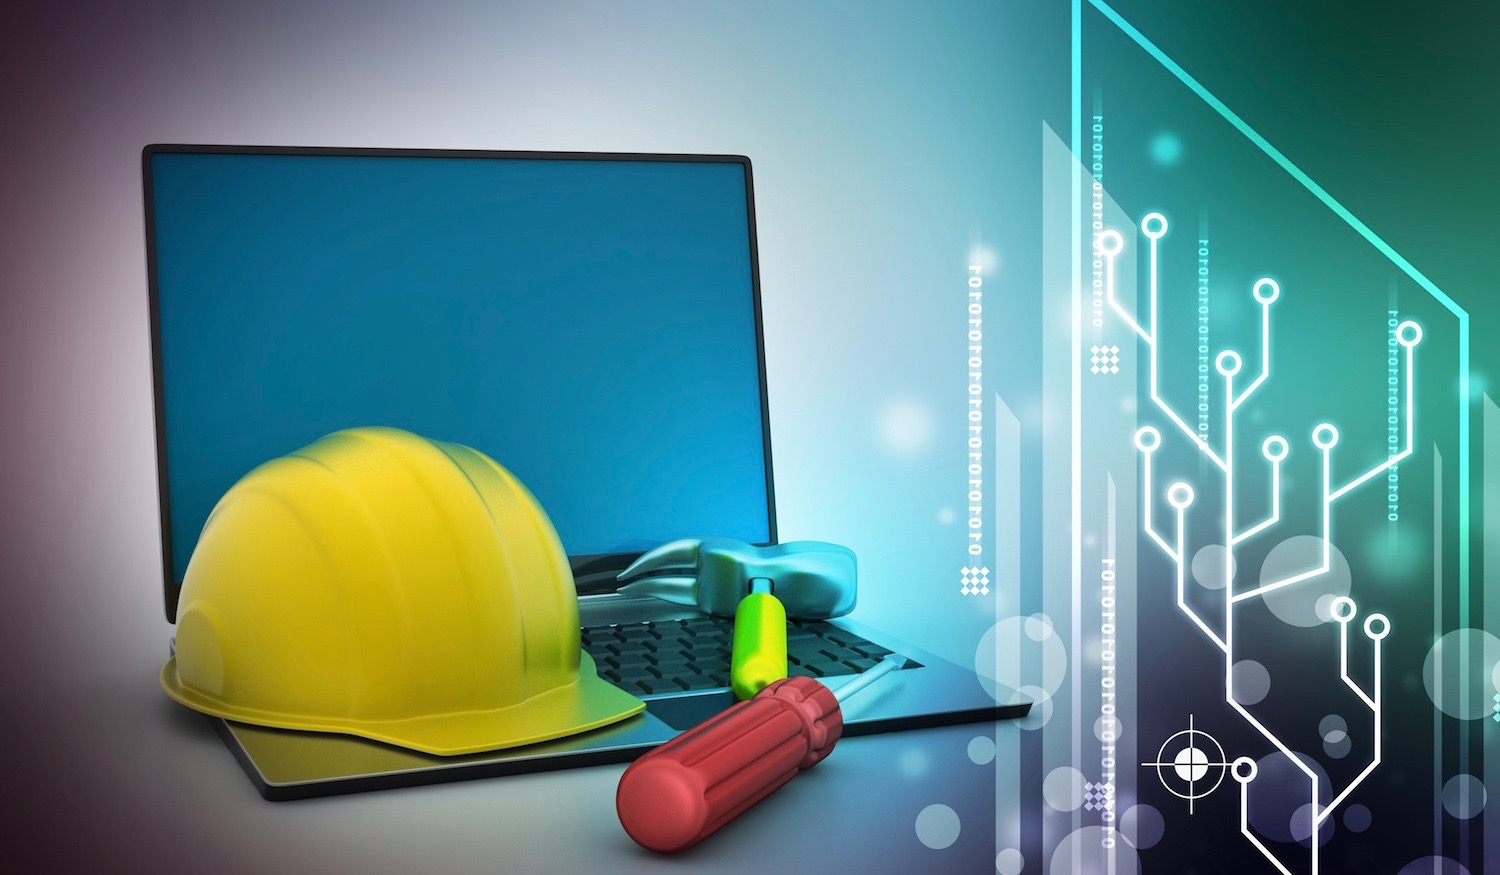 construction hat and tool on a laptop with data imagery